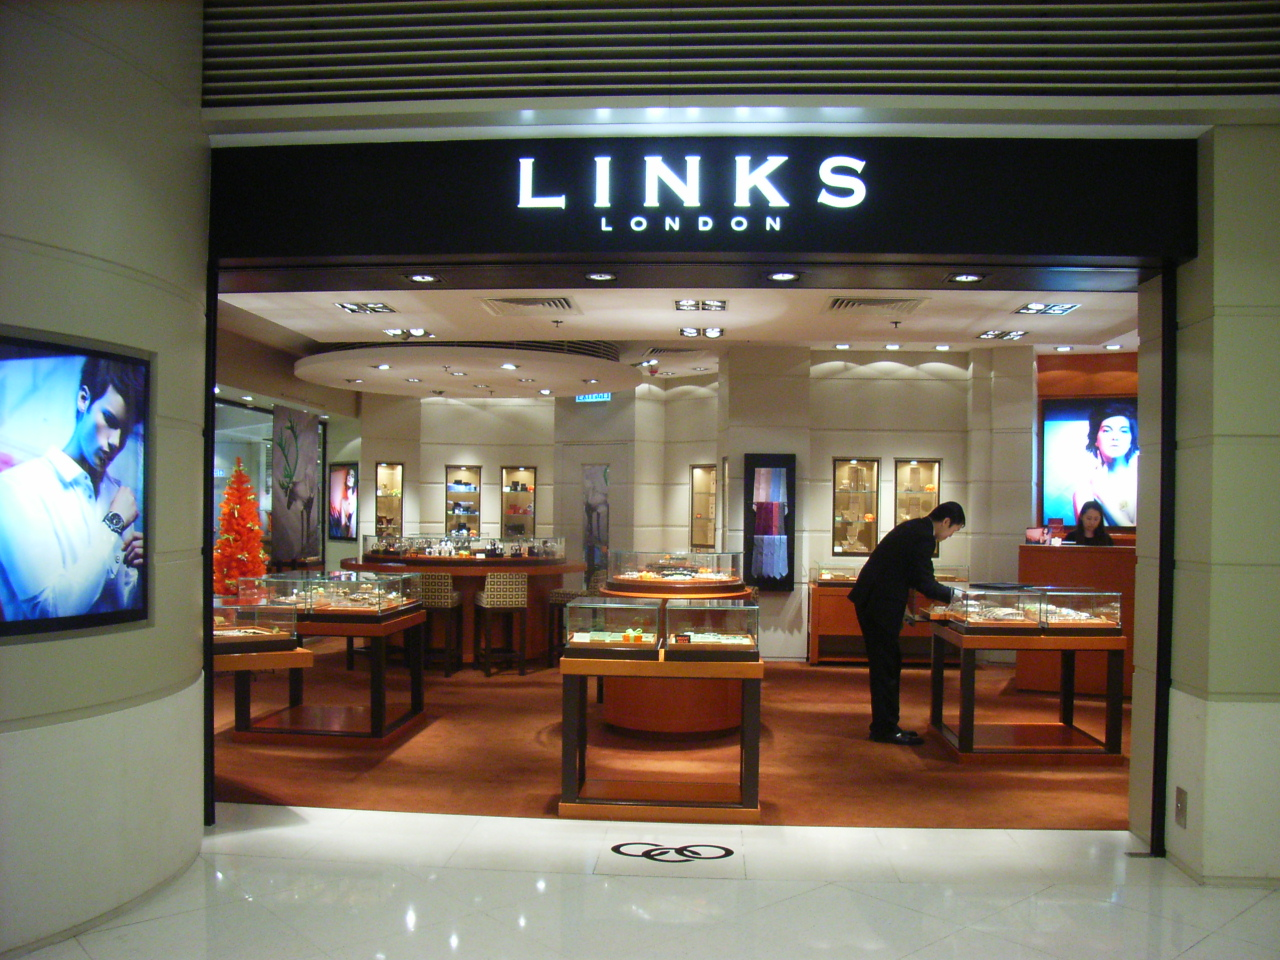 Links of London offers an eclectic mix of jewellery in sterling silver and 18 carat gold, for both men and women. The company formed in after a local restaurateur commissioned fish-shaped cufflinks for his customers; when Harvey Nichols saw them, the exclusive department store ordered a full collection.